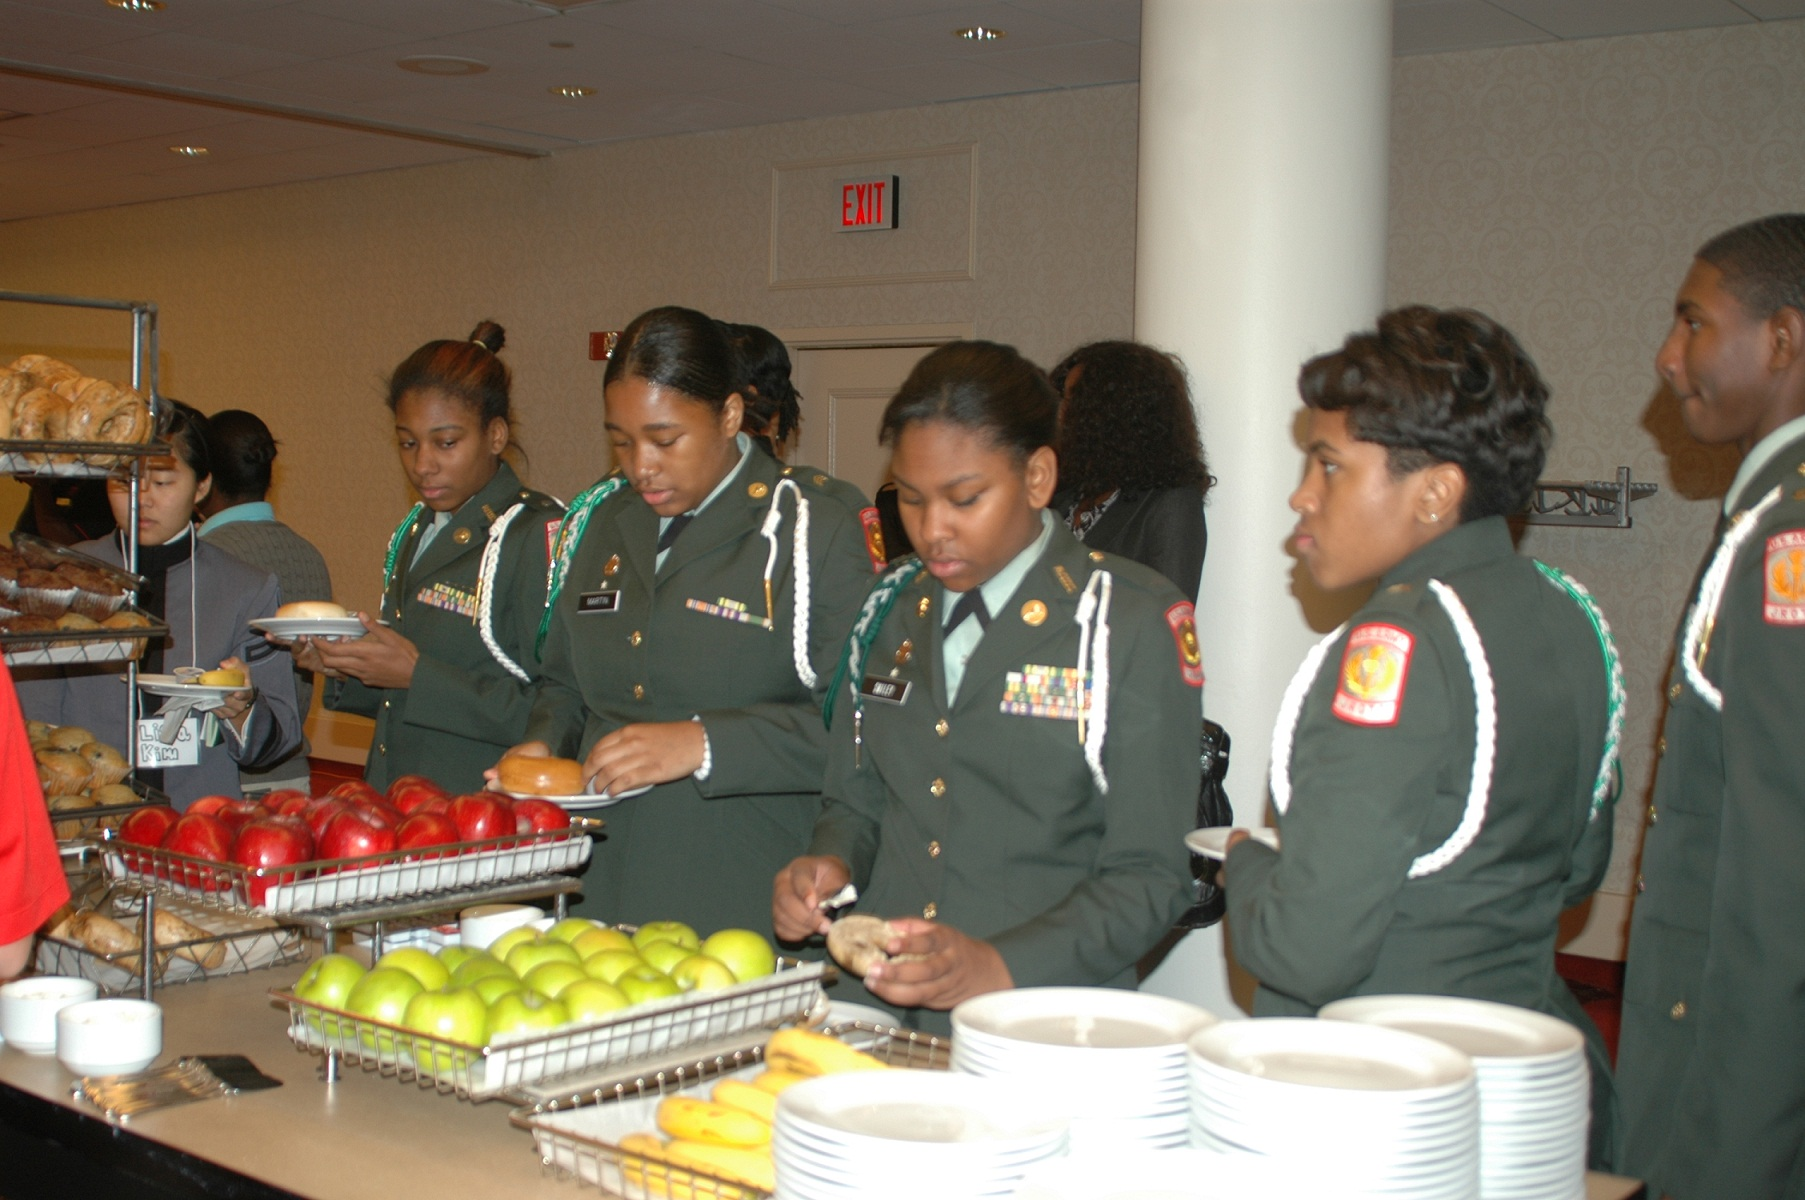 Detroit ROTC Cadets Breakfast at WPLE 2011